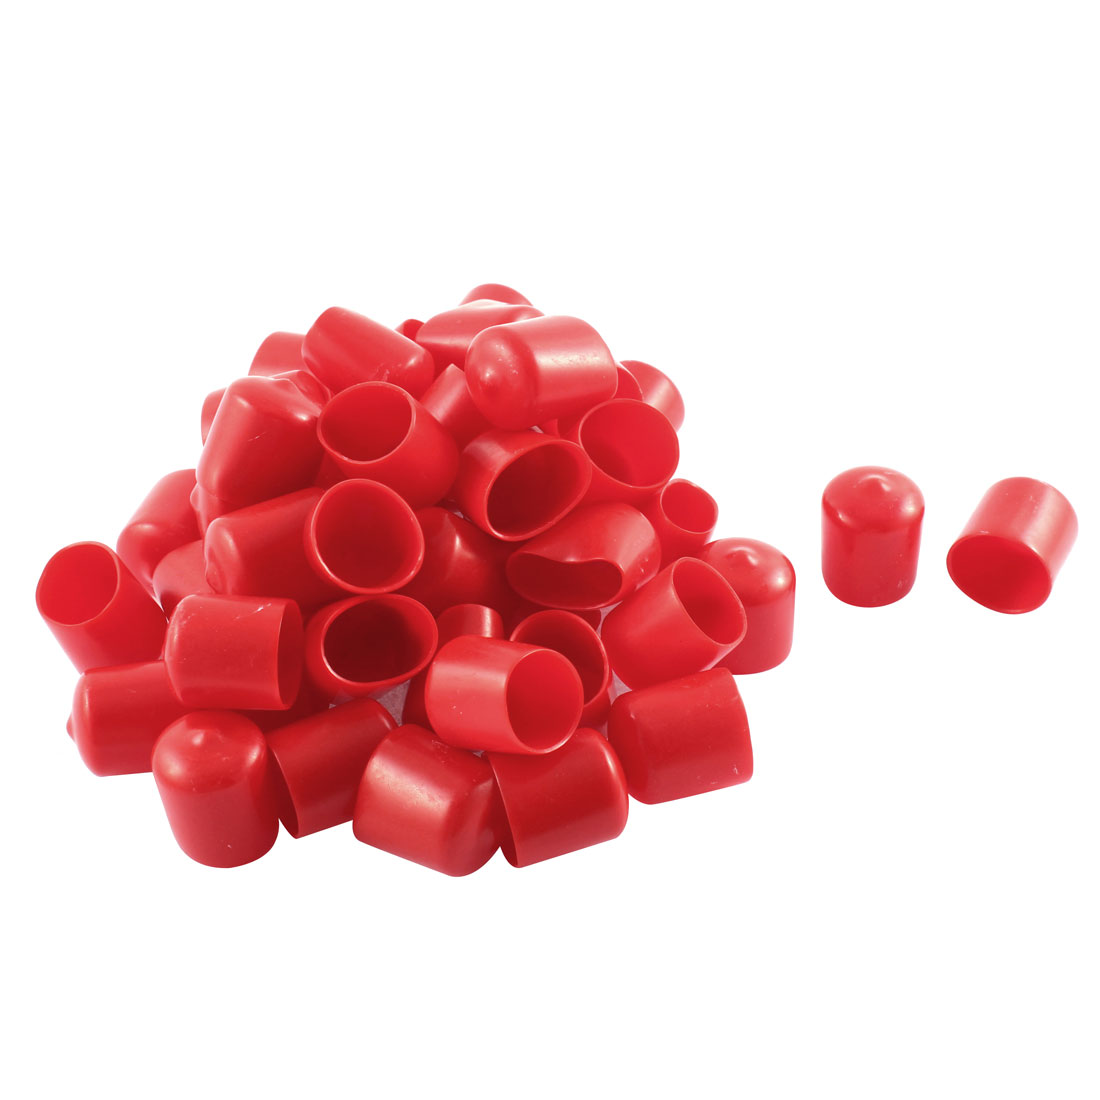 50Pcs Red Soft Plastic PVC Insulated End Sleeves Caps Cover 22mm Dia